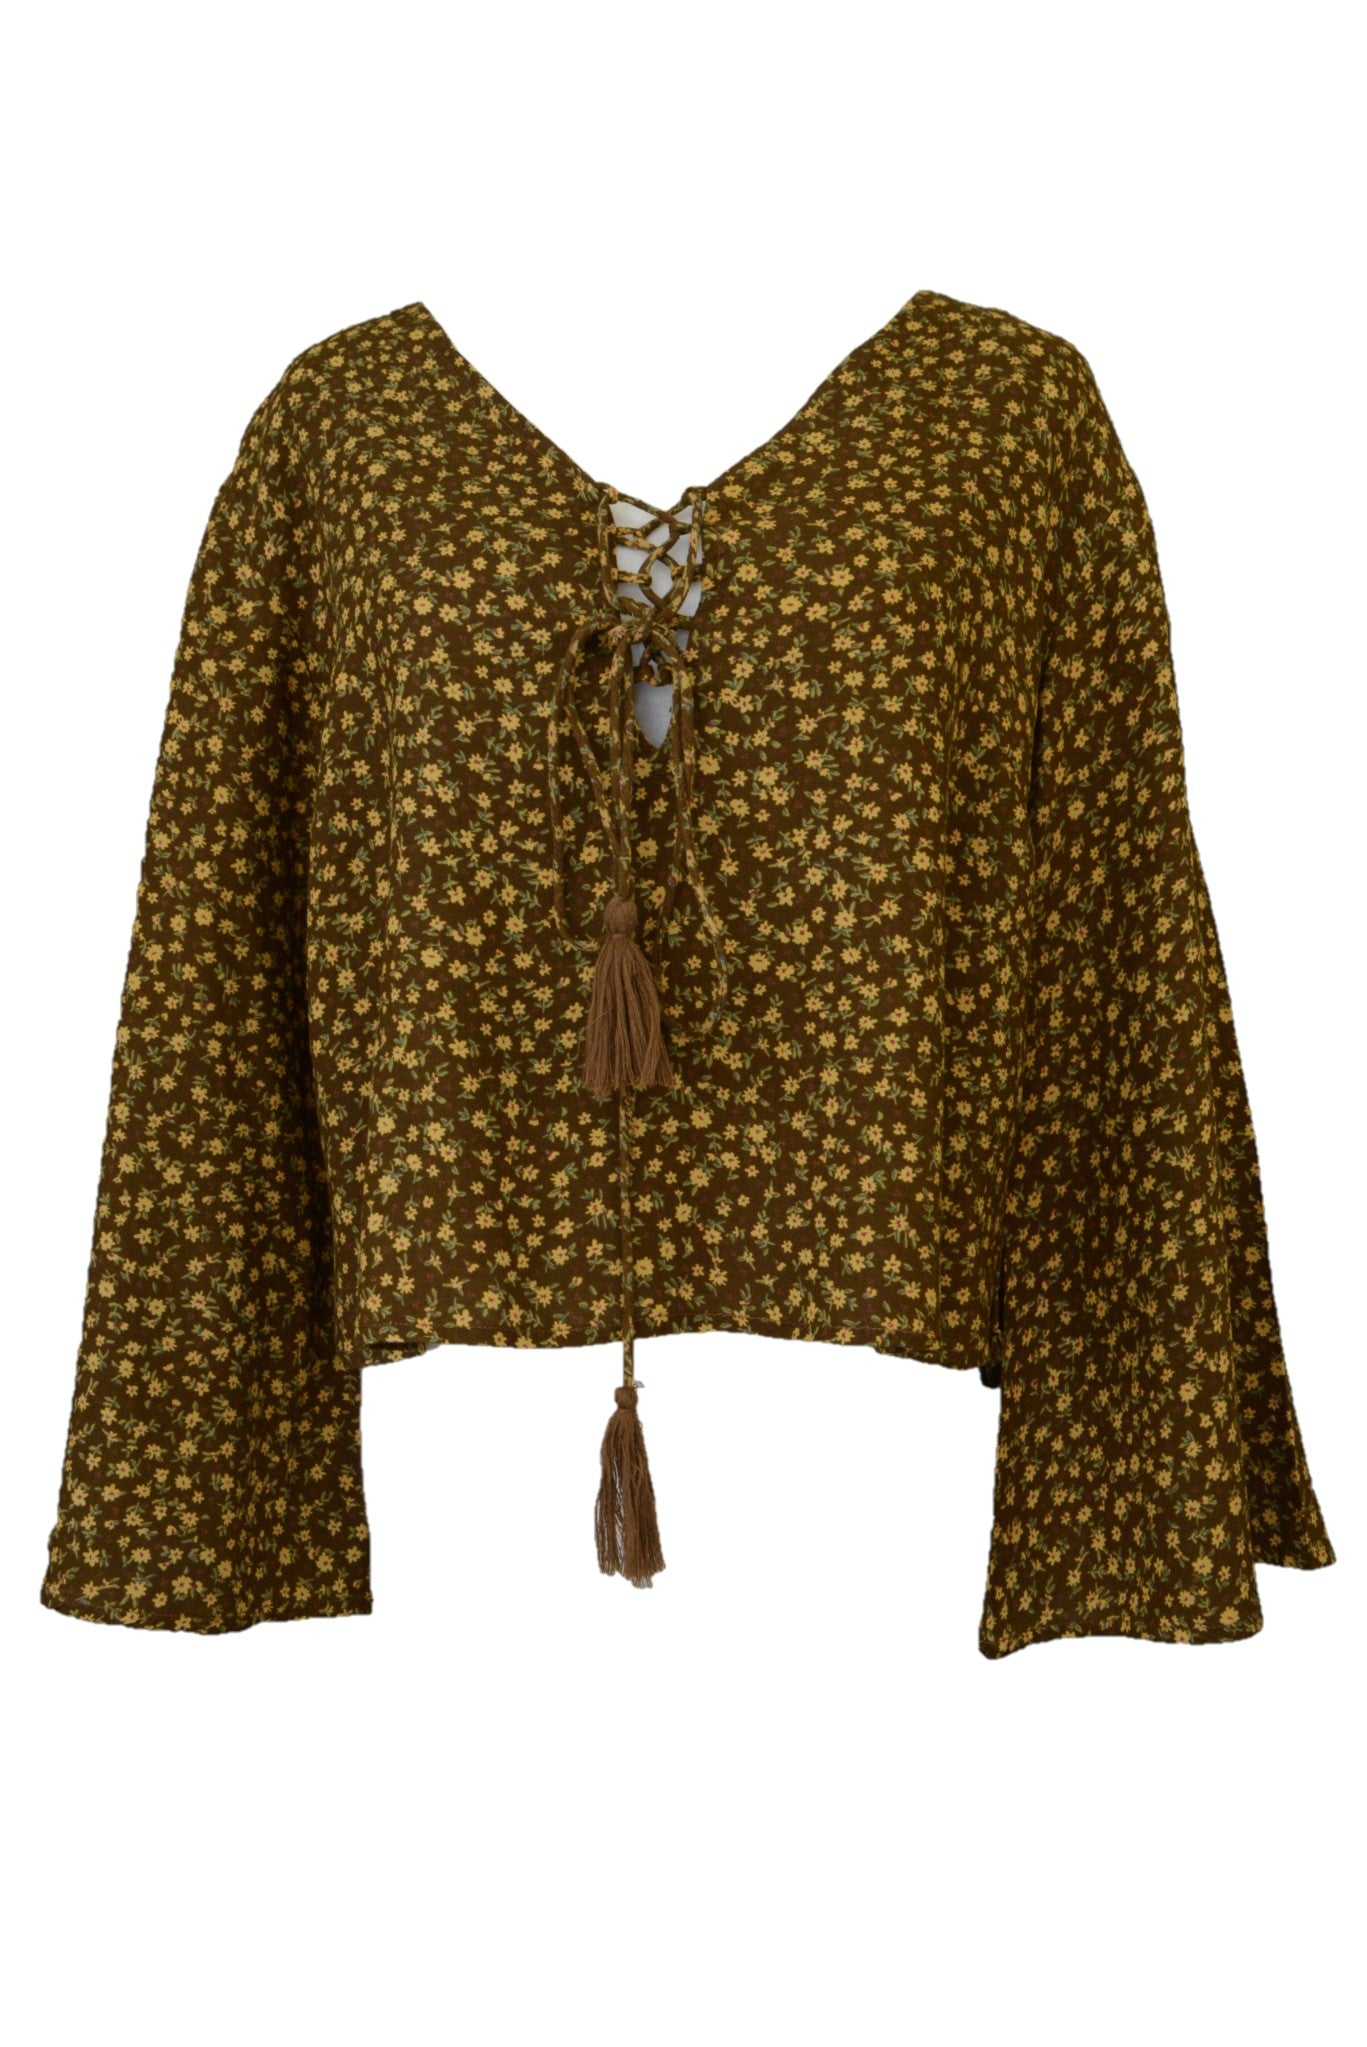 Tree of Life Bell Sleeve Top - Size L